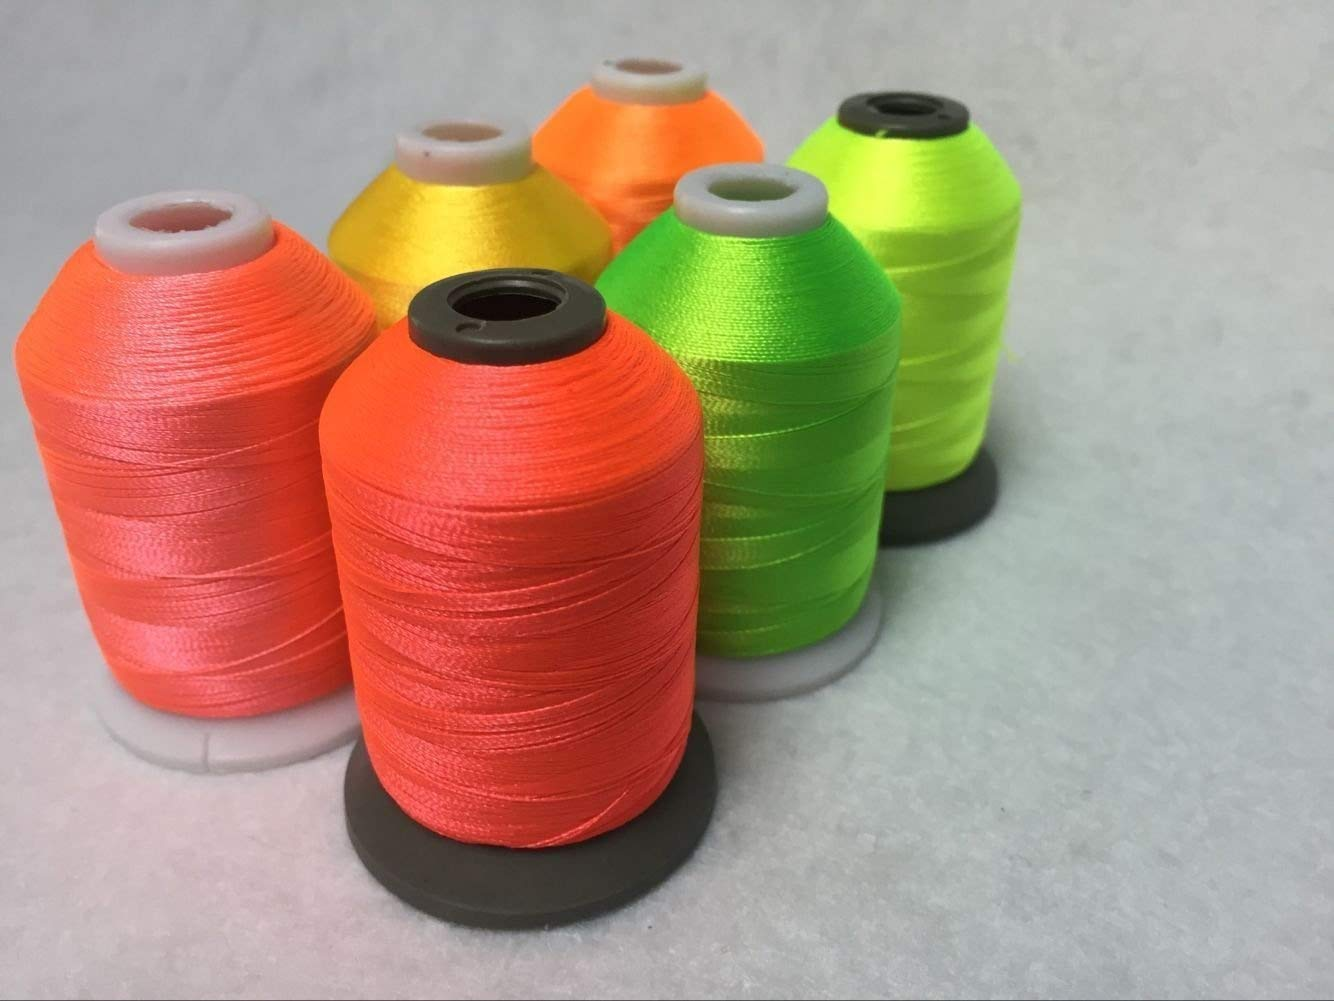 Sinbel Polyester Embroidery Thread 6 Neon Fluorescent Colors 1000Meters/1100Yards Per Spool For Brother Babylock Janome Singer Pfaff Husqvaran Bernina Machines Xinbei Inc 4337015937